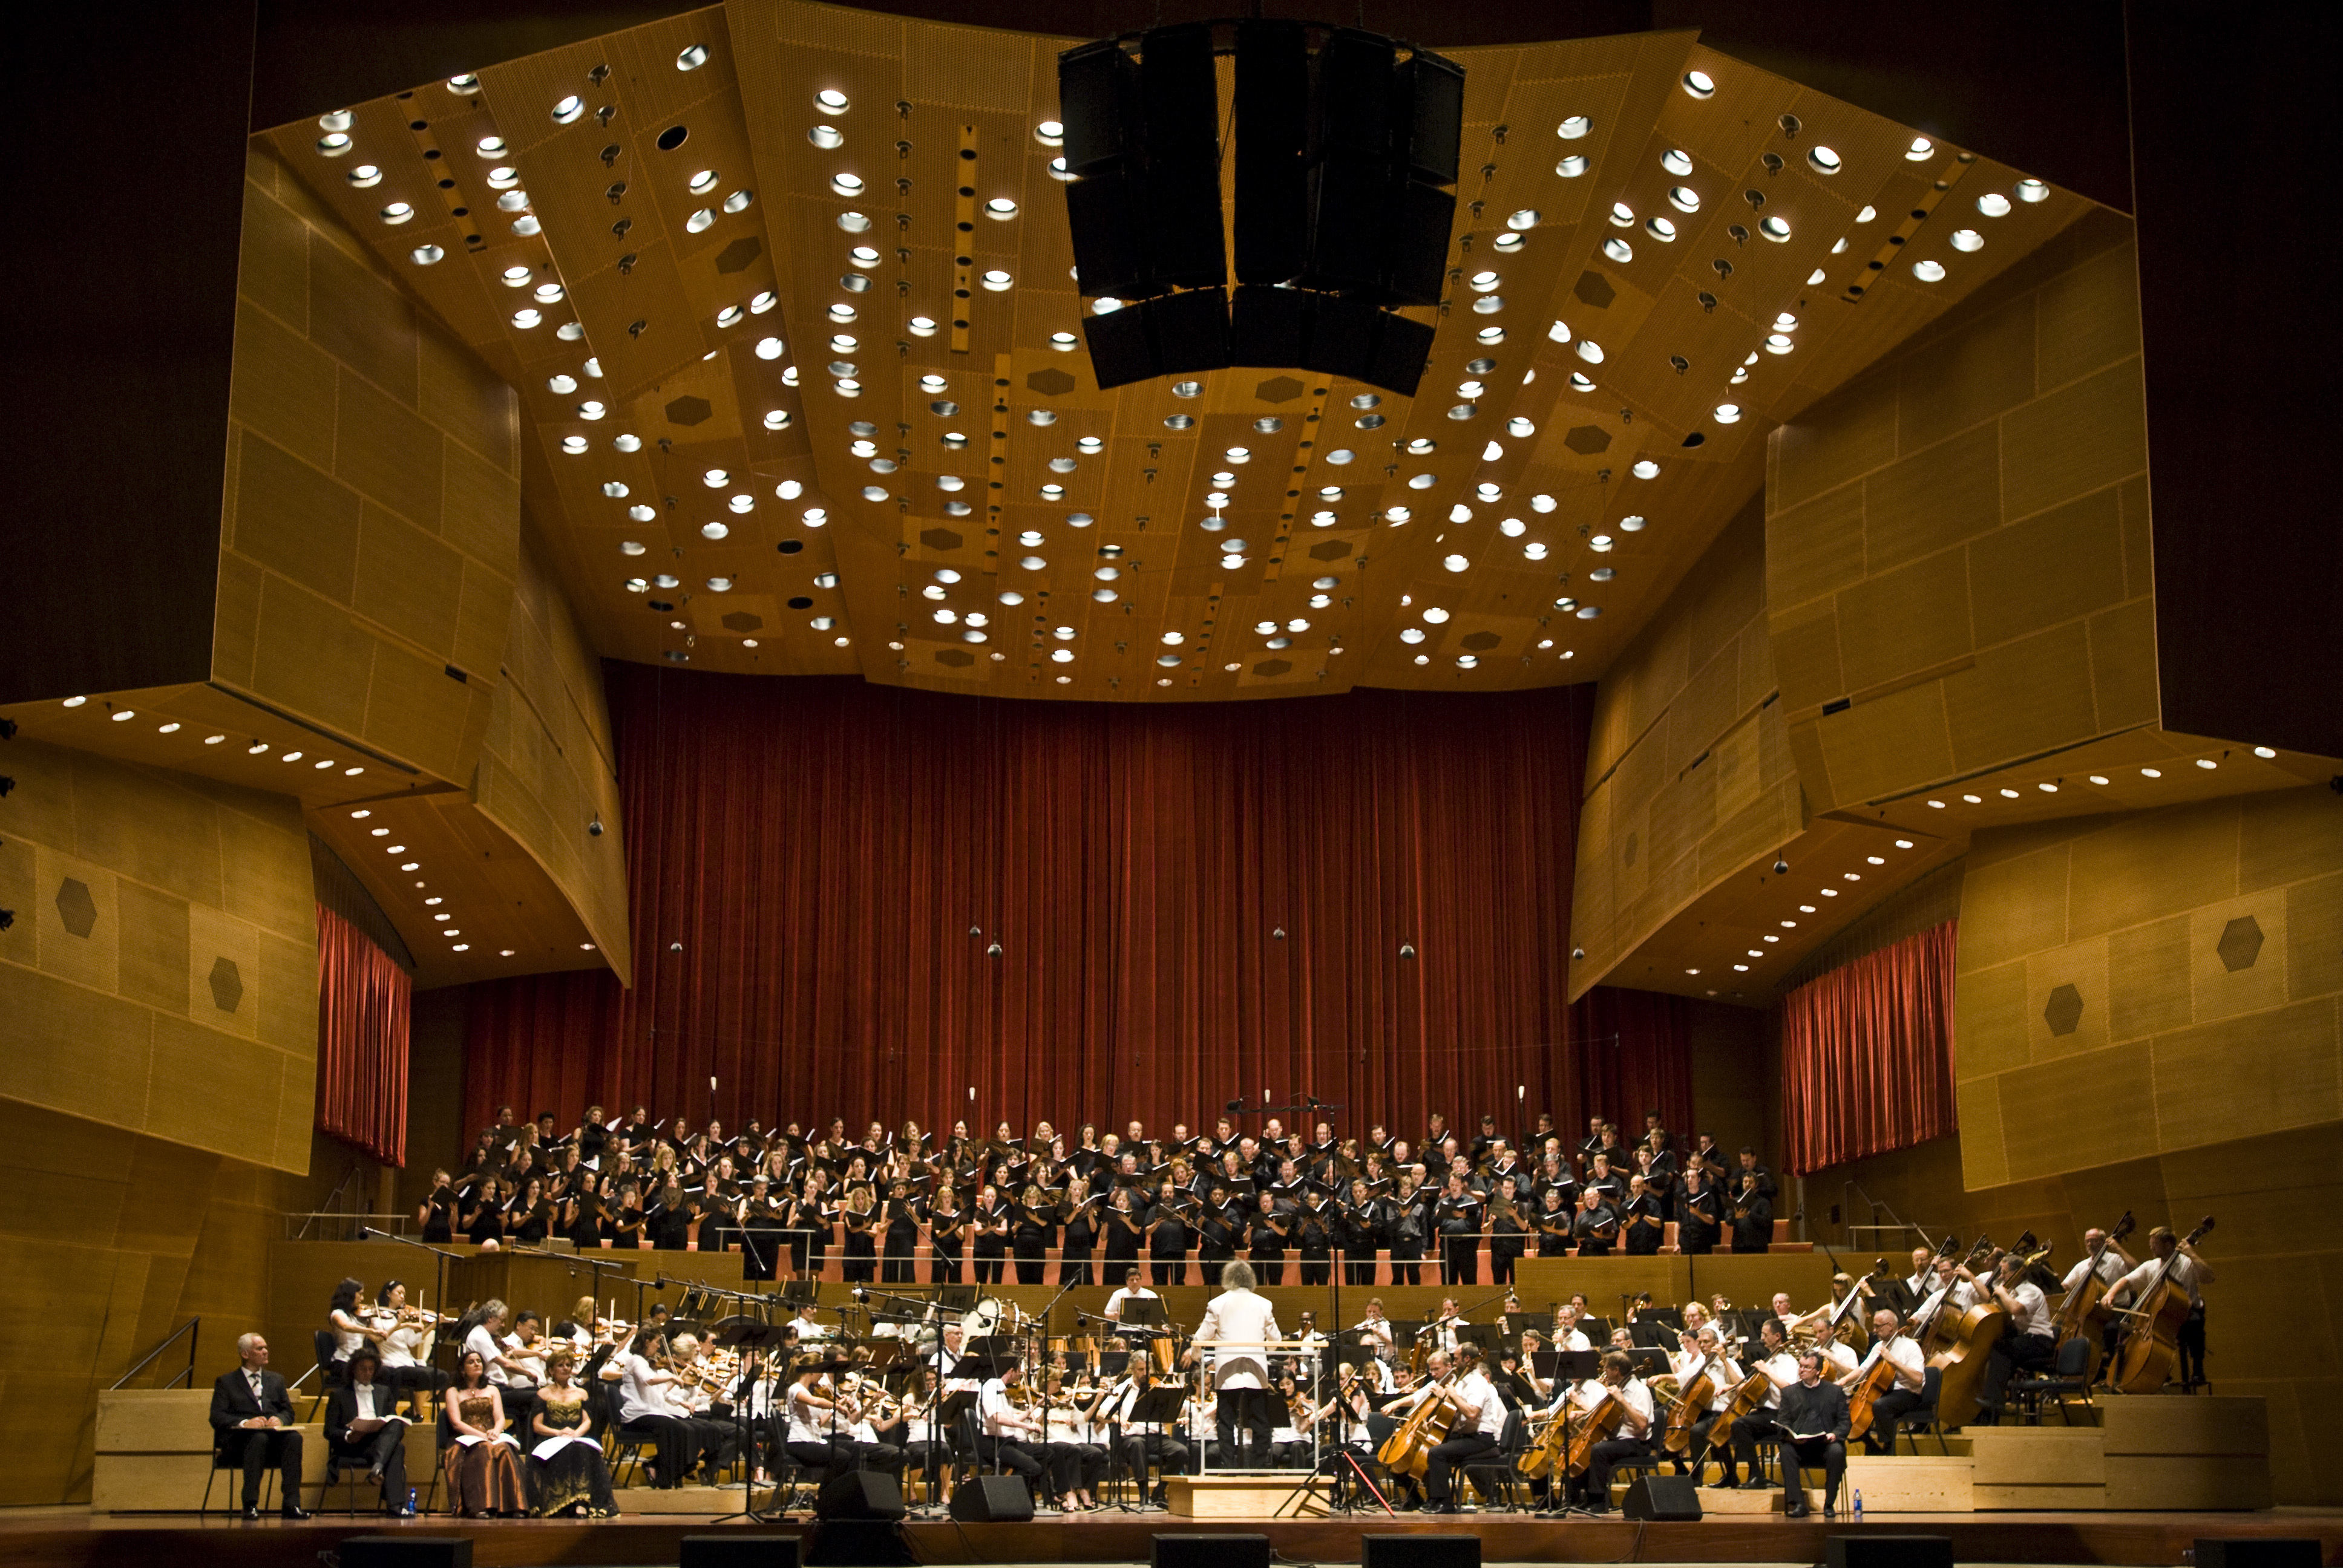 The Grant Park Orchestra and Chorus perform in concert at the Pritzker Pavilion in Millennium Park.